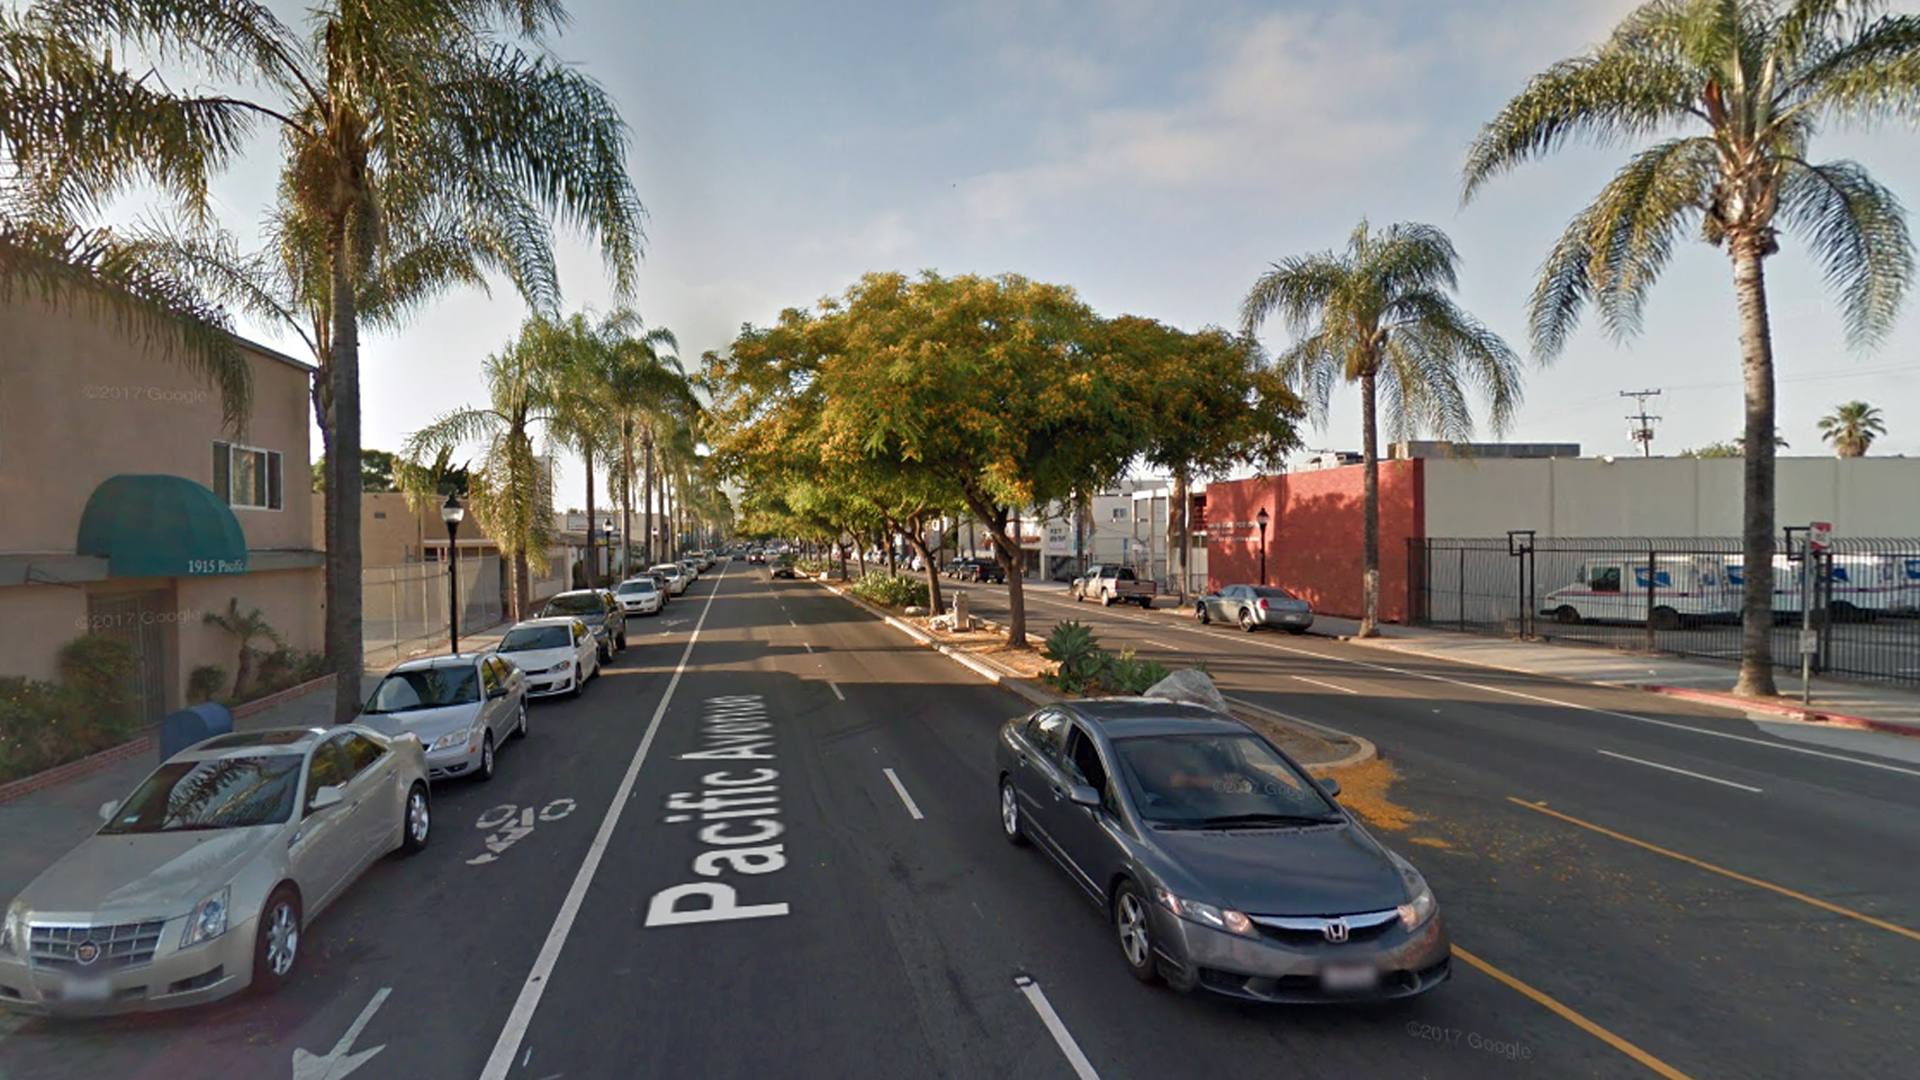 The 1900 block of Pacific Avenue in Long Beach is seen in a Google Maps Street View image from June 2017.